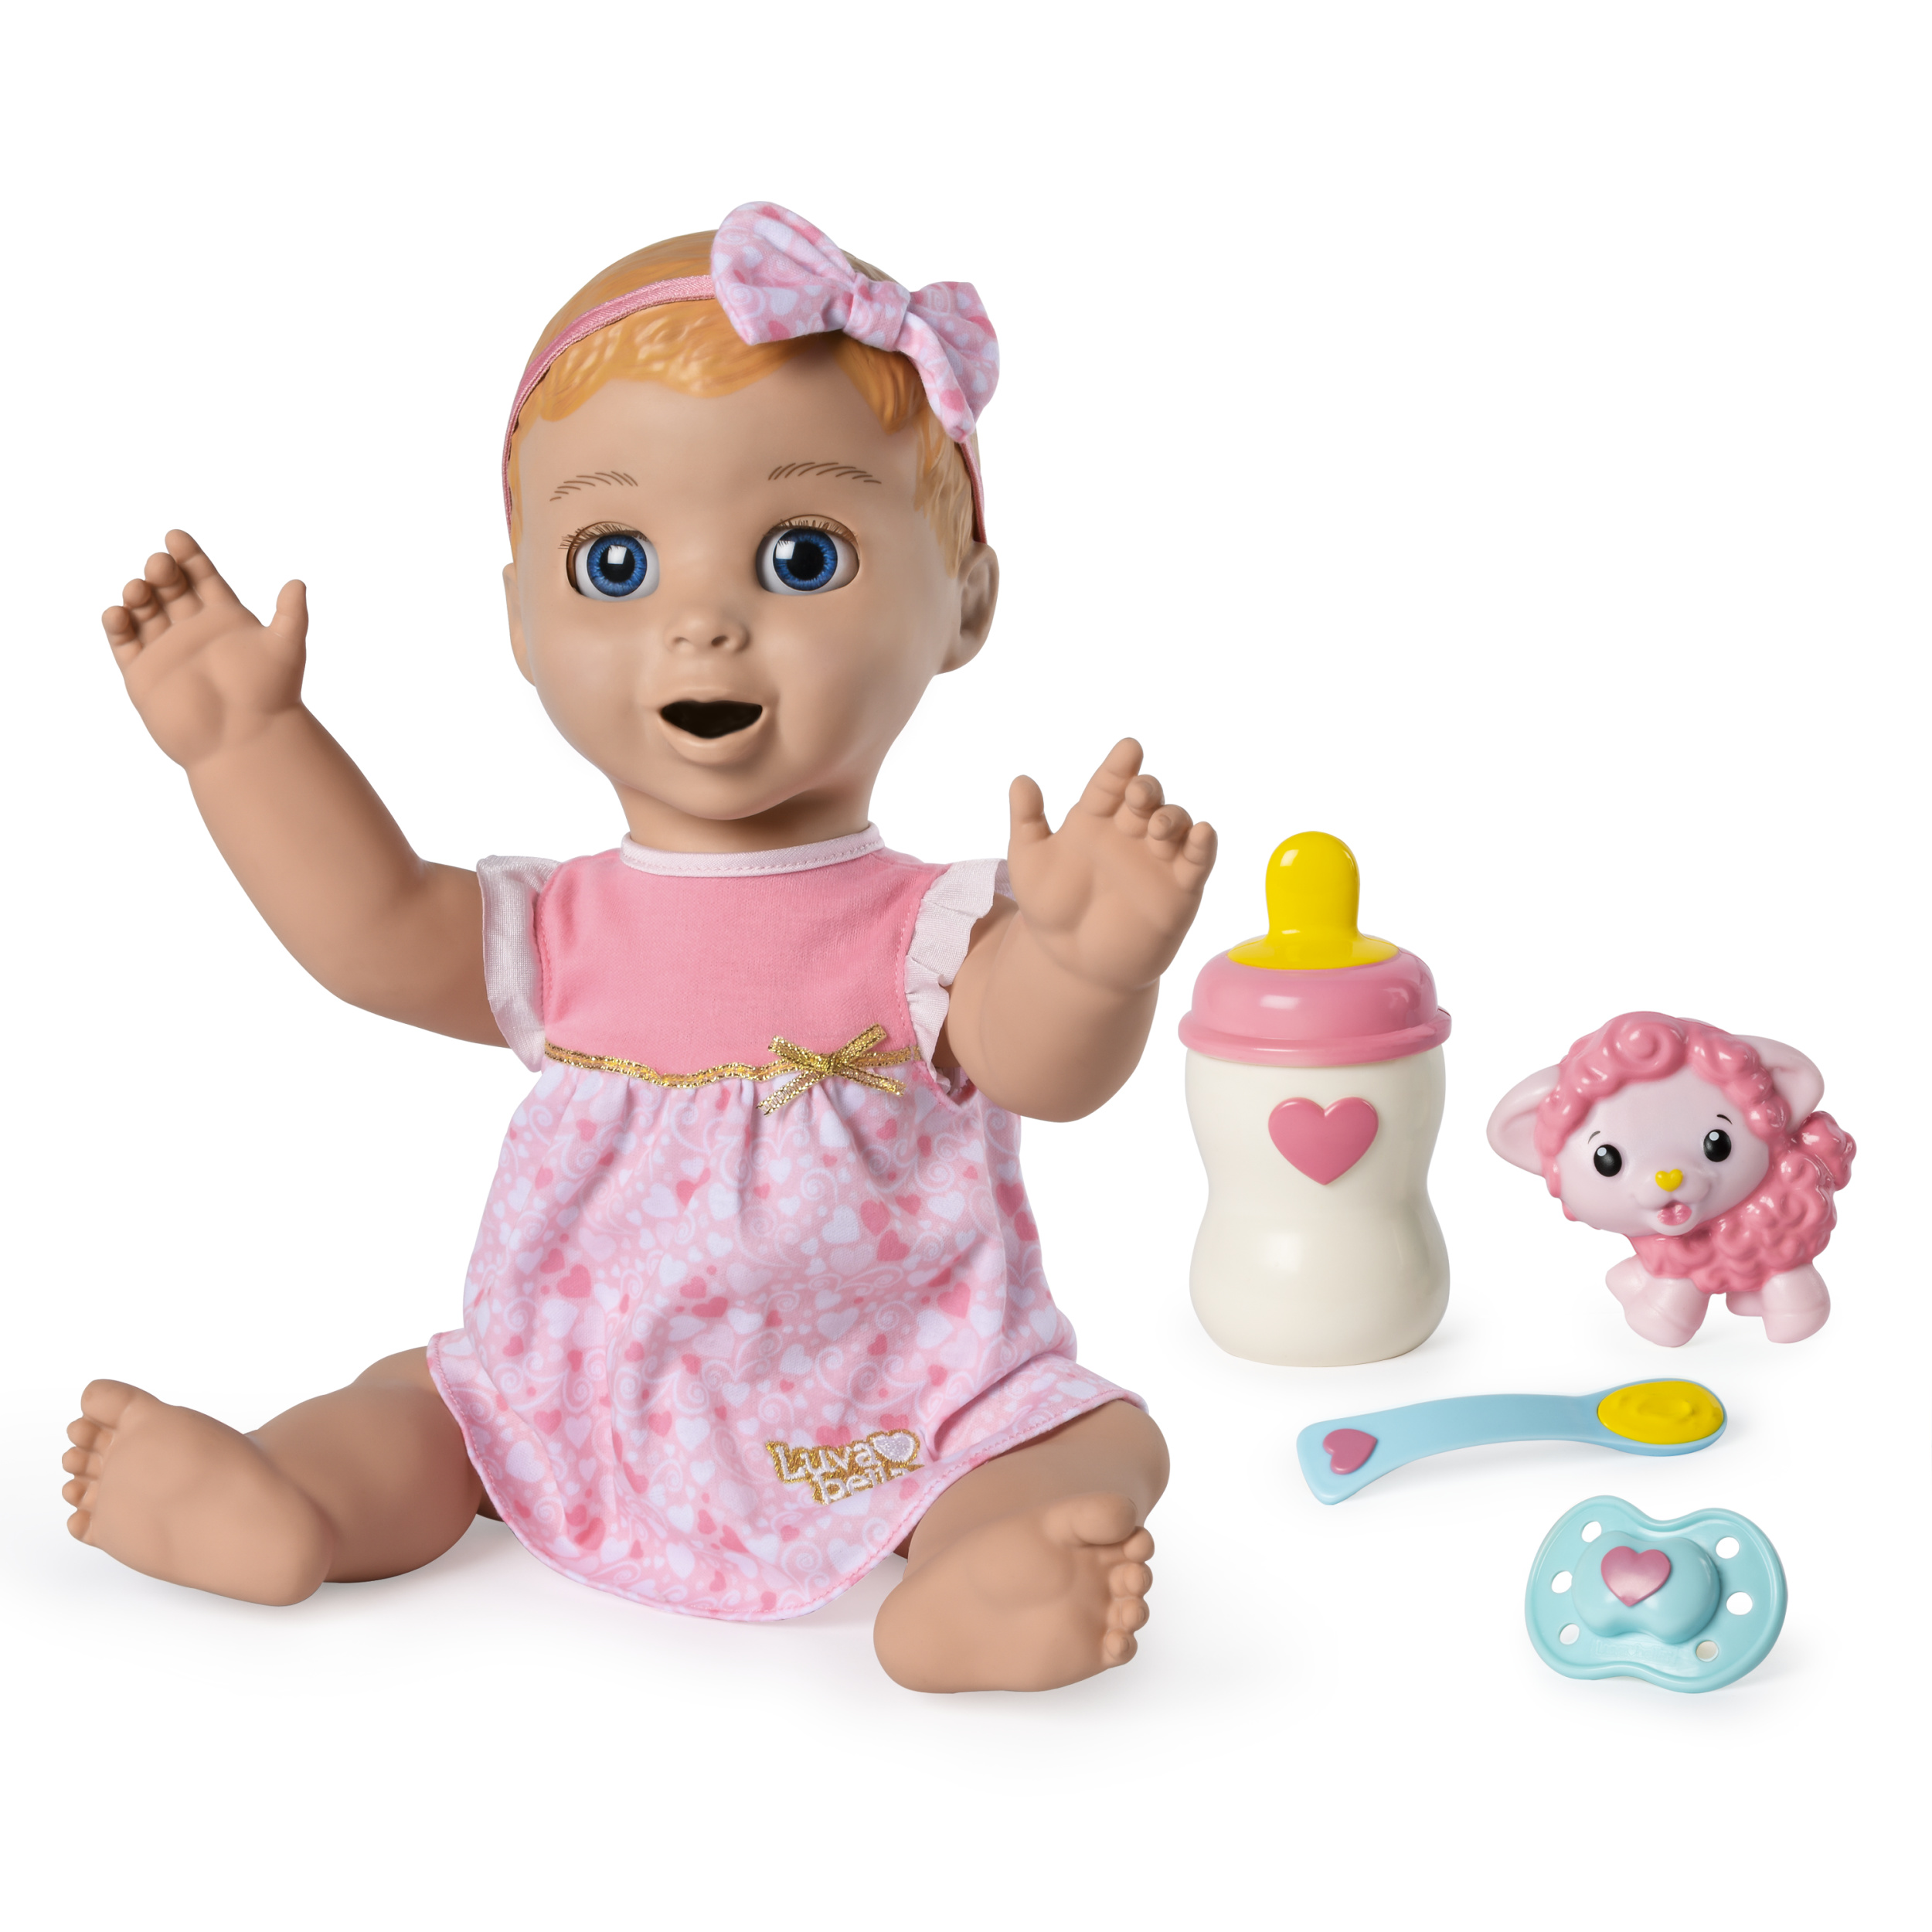 Luvabella Blonde Hair, Responsive Baby Doll with Real Expressions and Movement, for Ages 4 and Up